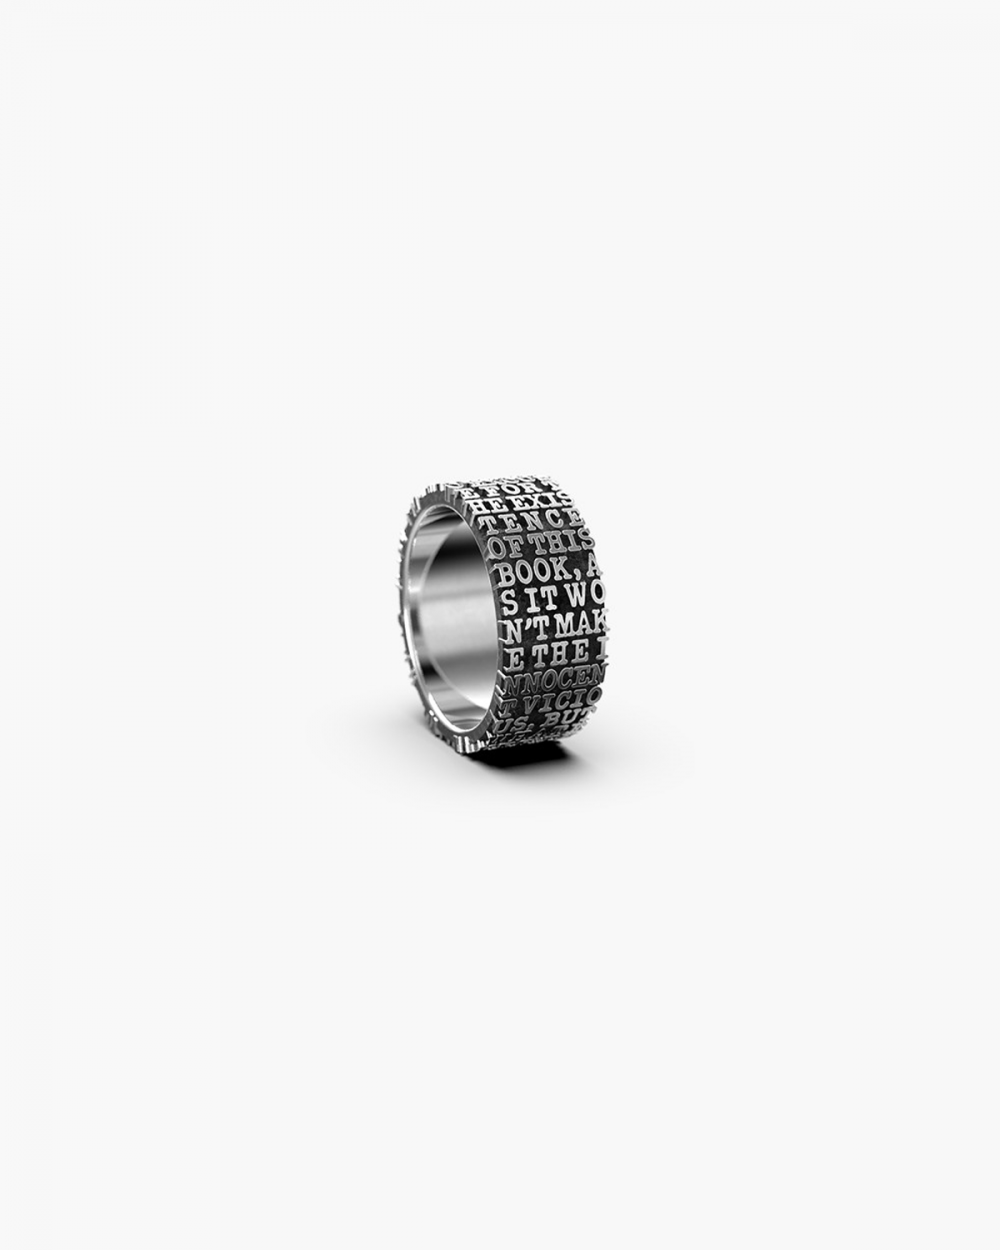 MYNOVE25 VERTICAL LYRICS RING NOVE25